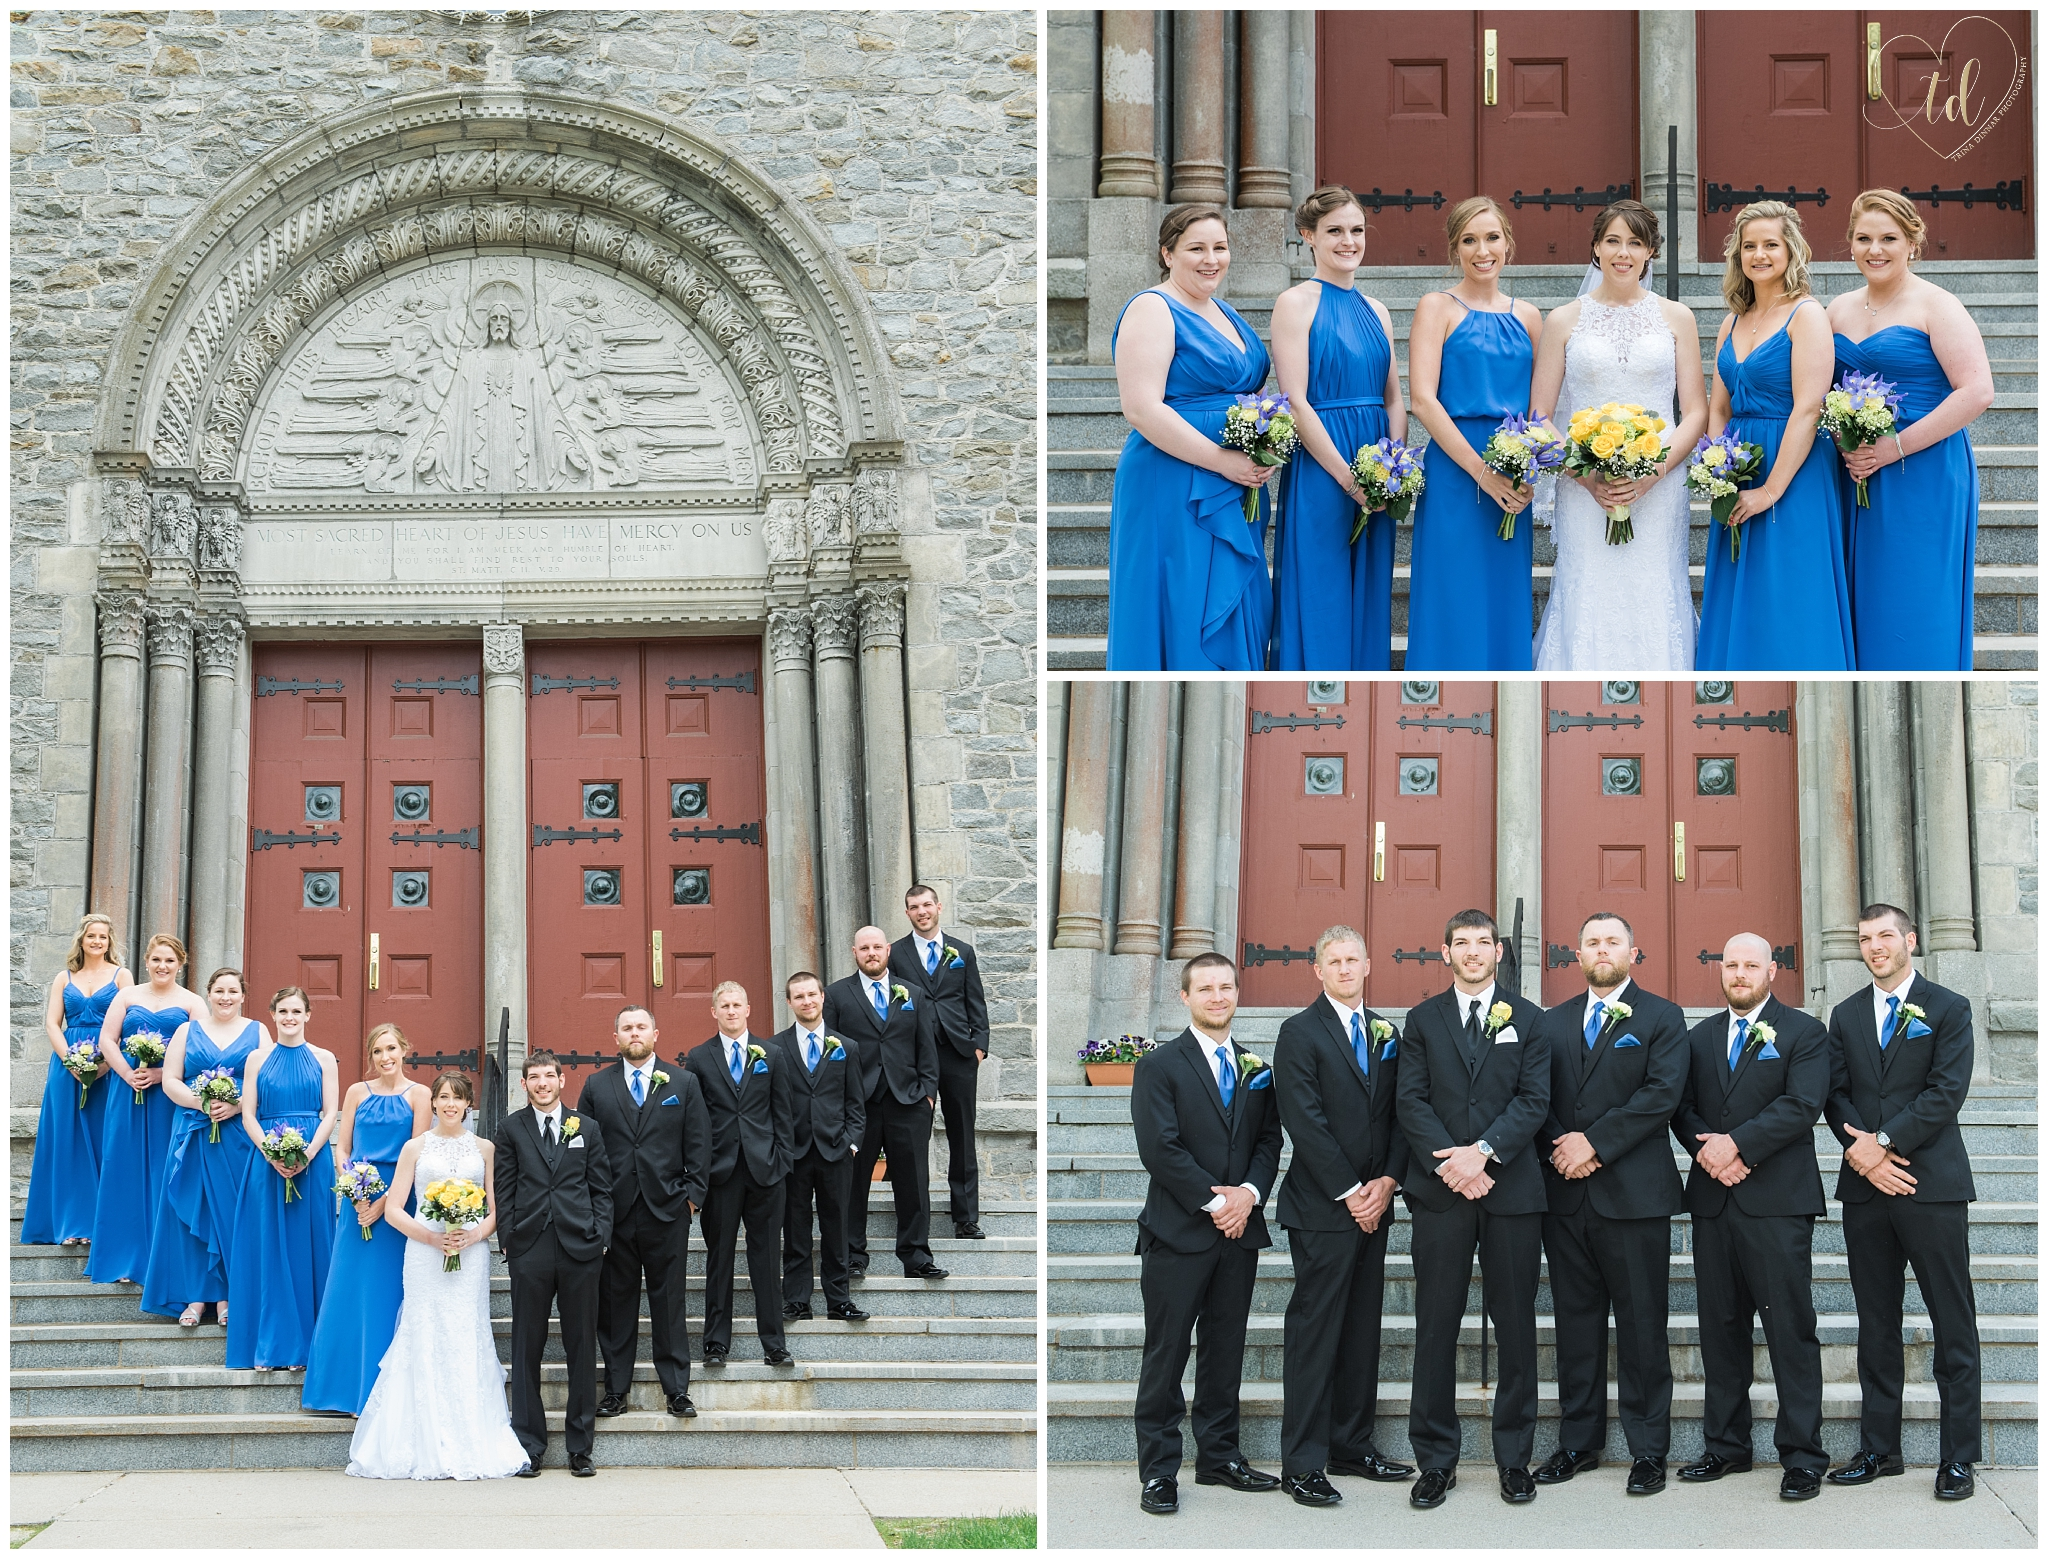 Wedding portrait photography at the Sacred Heart Church Yarmouth, ME.